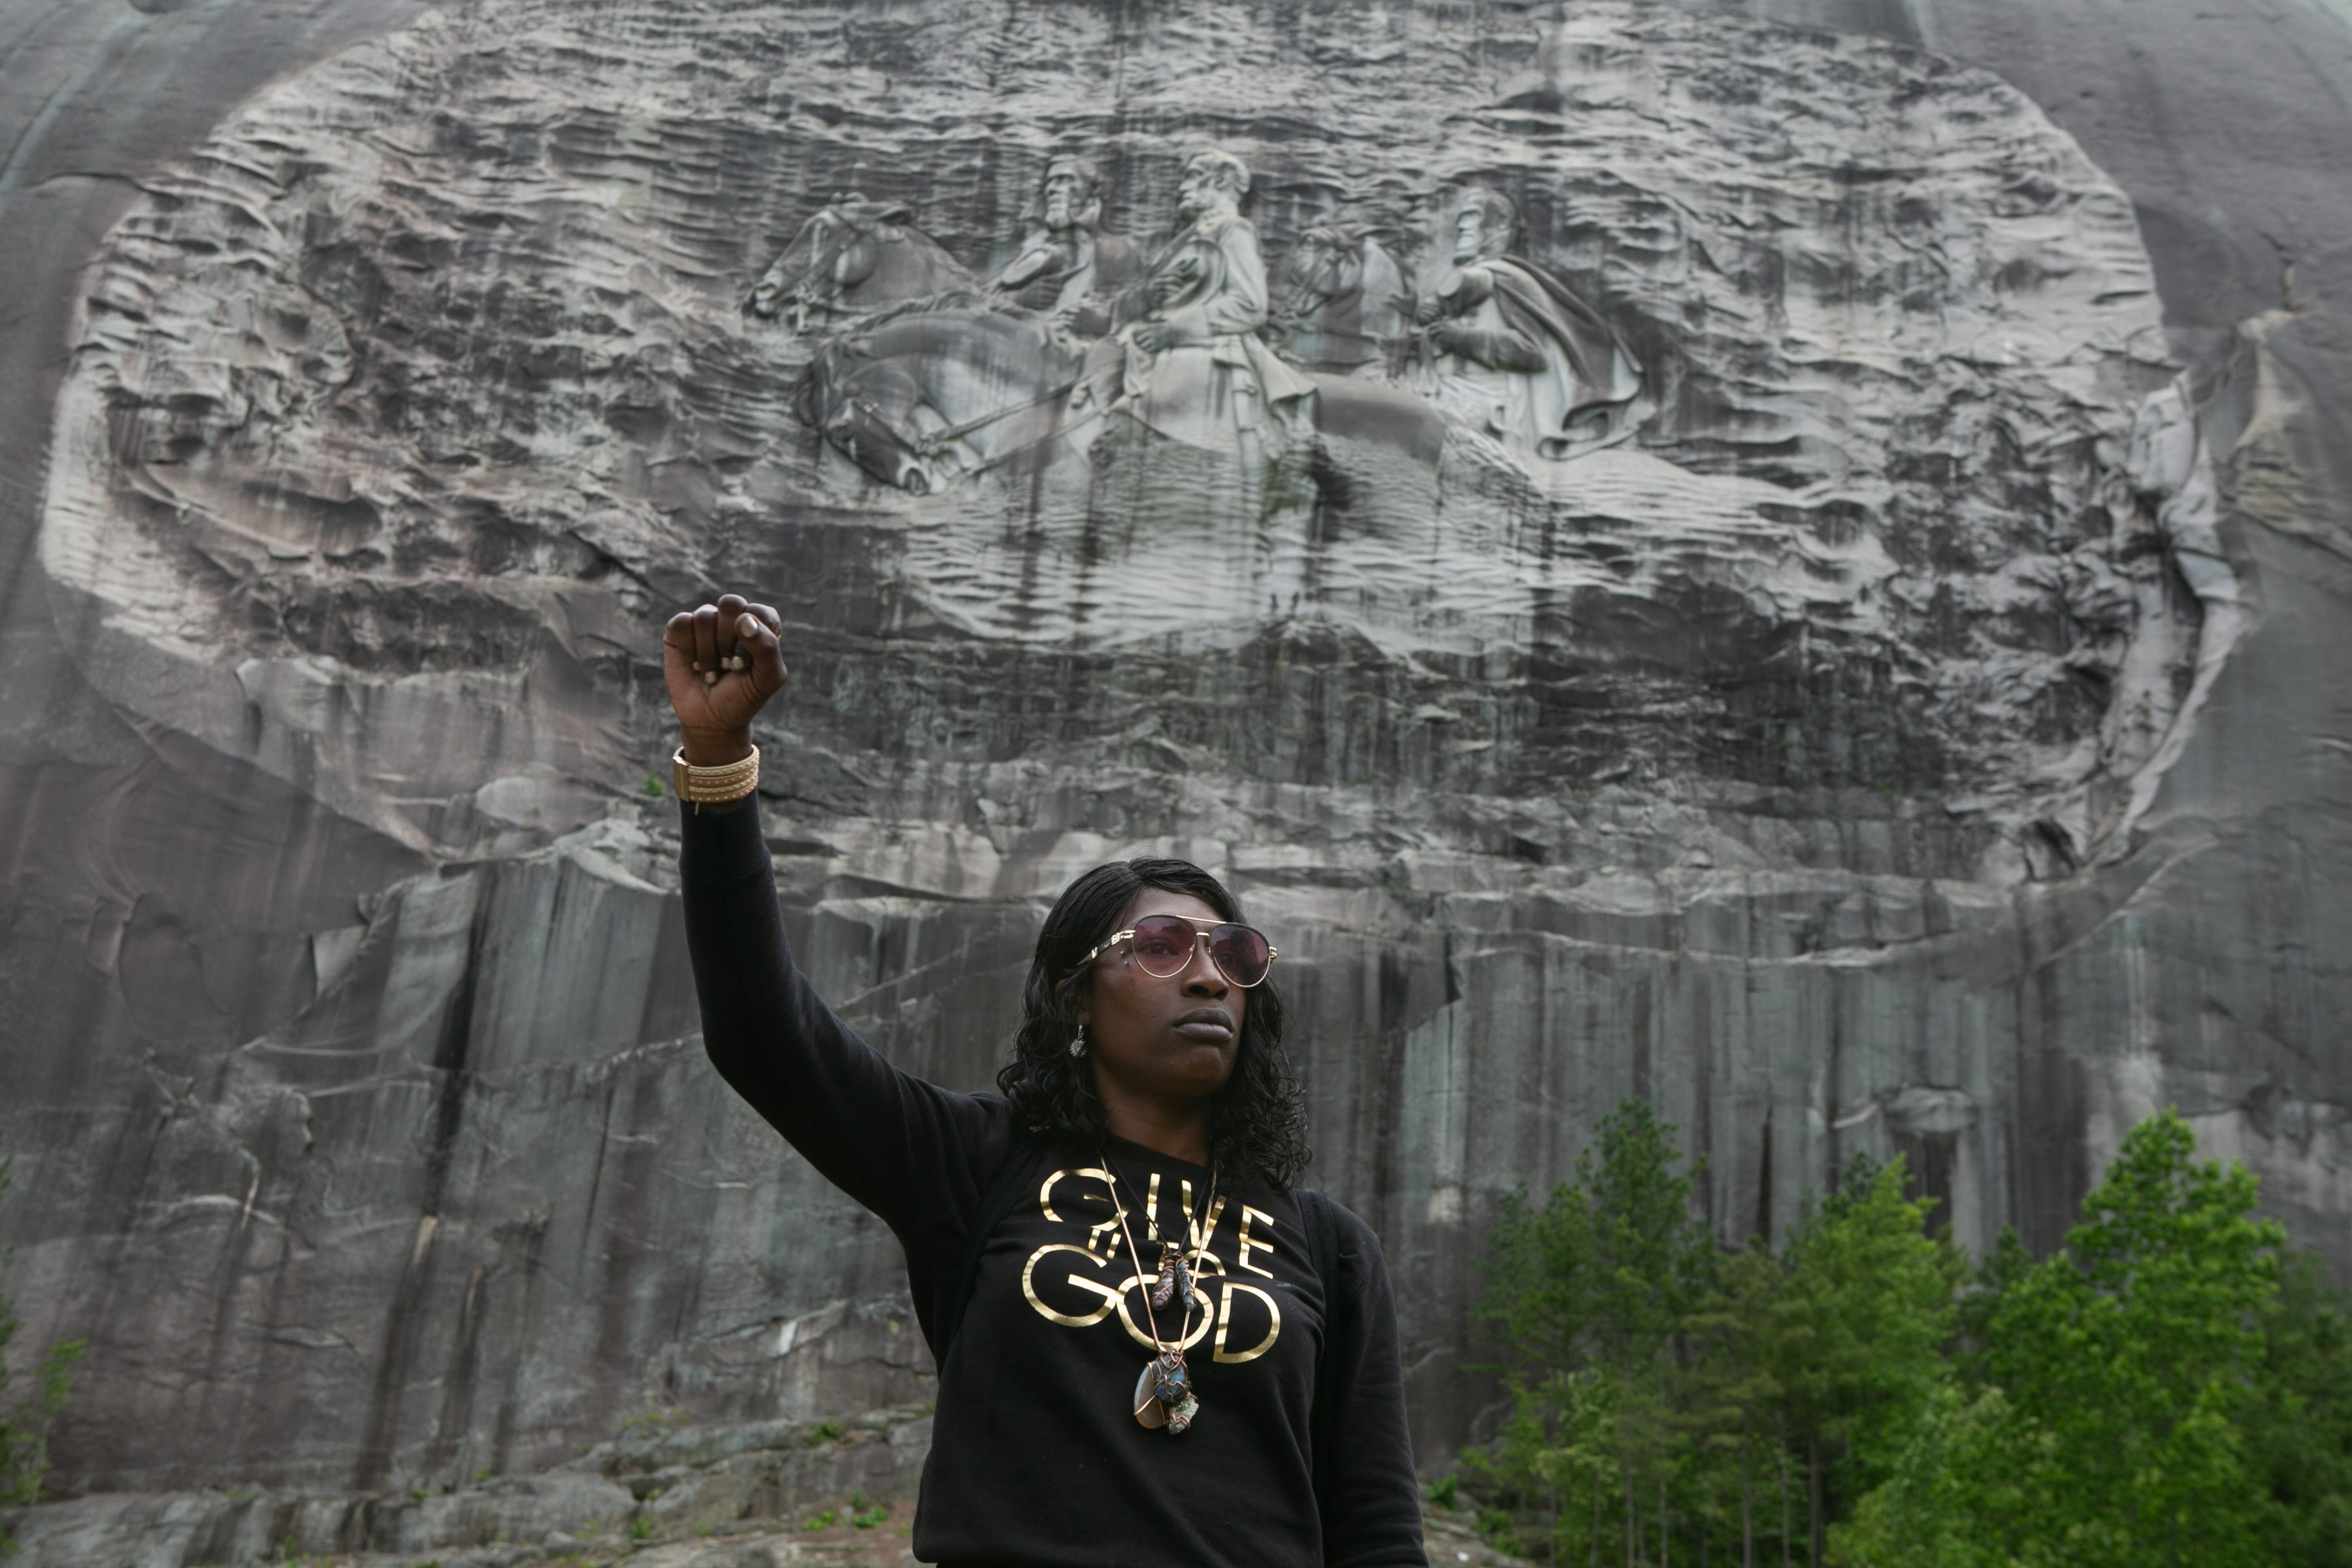 STONE MOUNTAIN, GA - JUNE 16: Lahahuia Hanks holds up a fist in front of the Confederate carving at Stone Mountain Park during a Black Lives Matter protest on June 16, 2020 in Stone Mountain, Georgia. The march is to protest confederate monuments and recent police shootings.  Stone Mountain Park features a Confederate memorial carving depicting Stonewall Jackson, Robert E. Lee, and Jefferson Davis, President of the confederate states.  (Photo by Jessica McGowan/Getty Images)